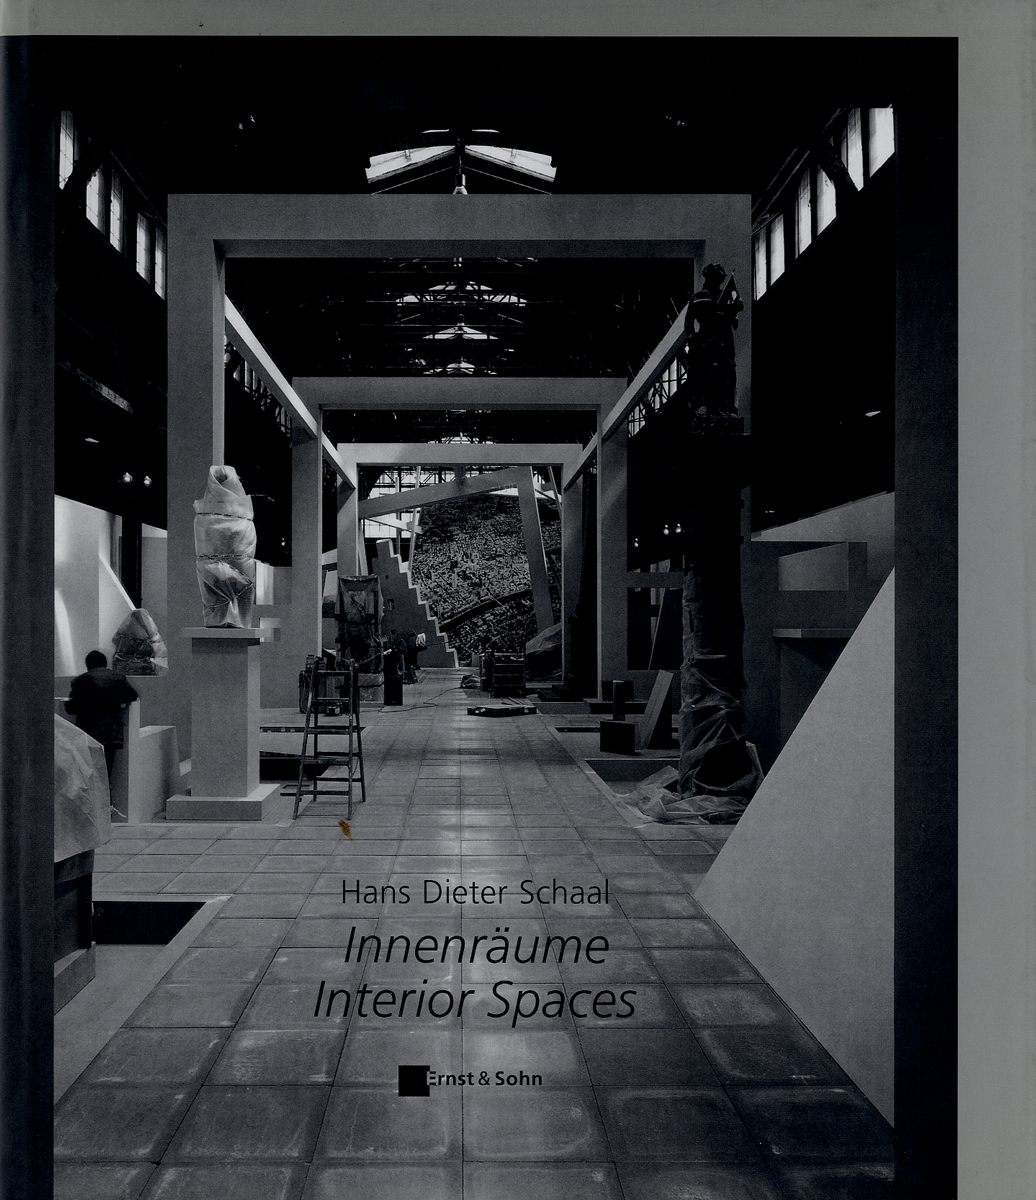 Innenräume – Interior Spaces